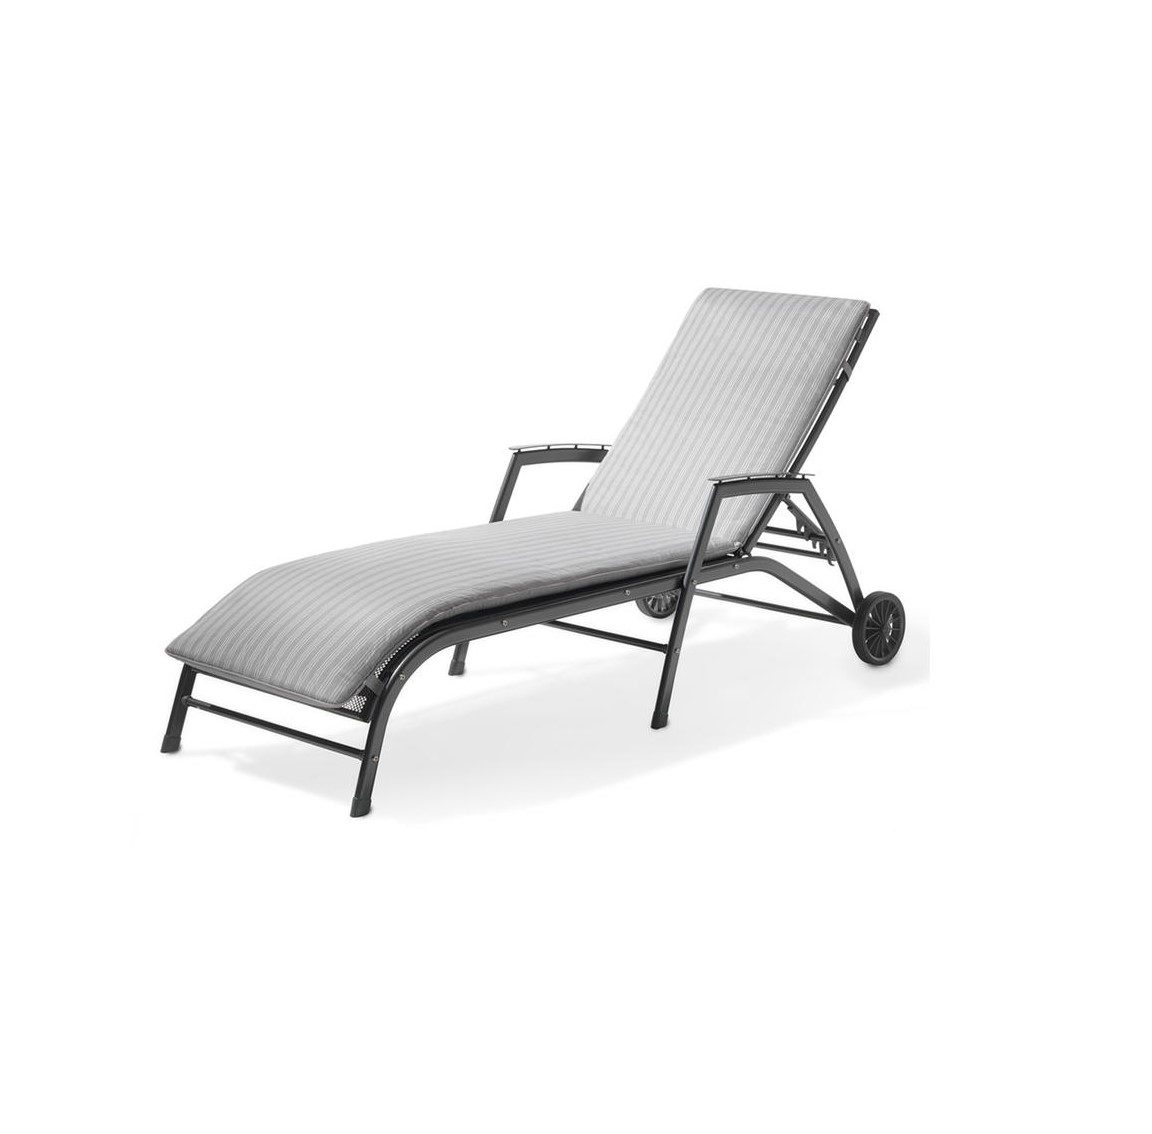 Kettler Henley Sun Lounger - without cushion